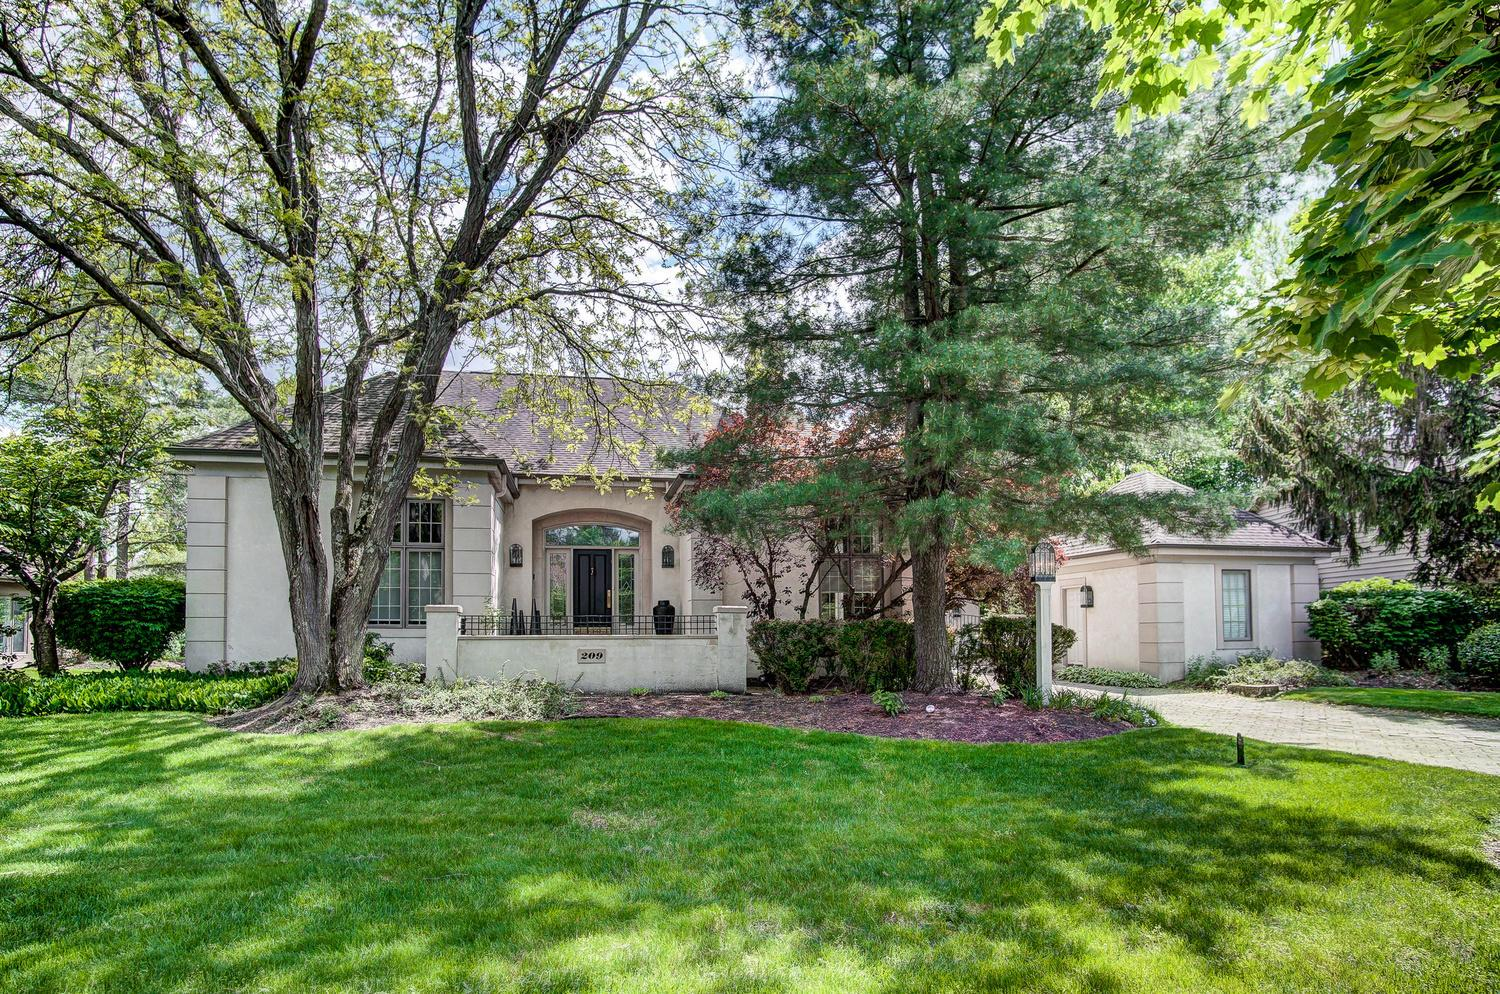 Photo of 209 Deer Meadow Drive, Gahanna, OH 43230